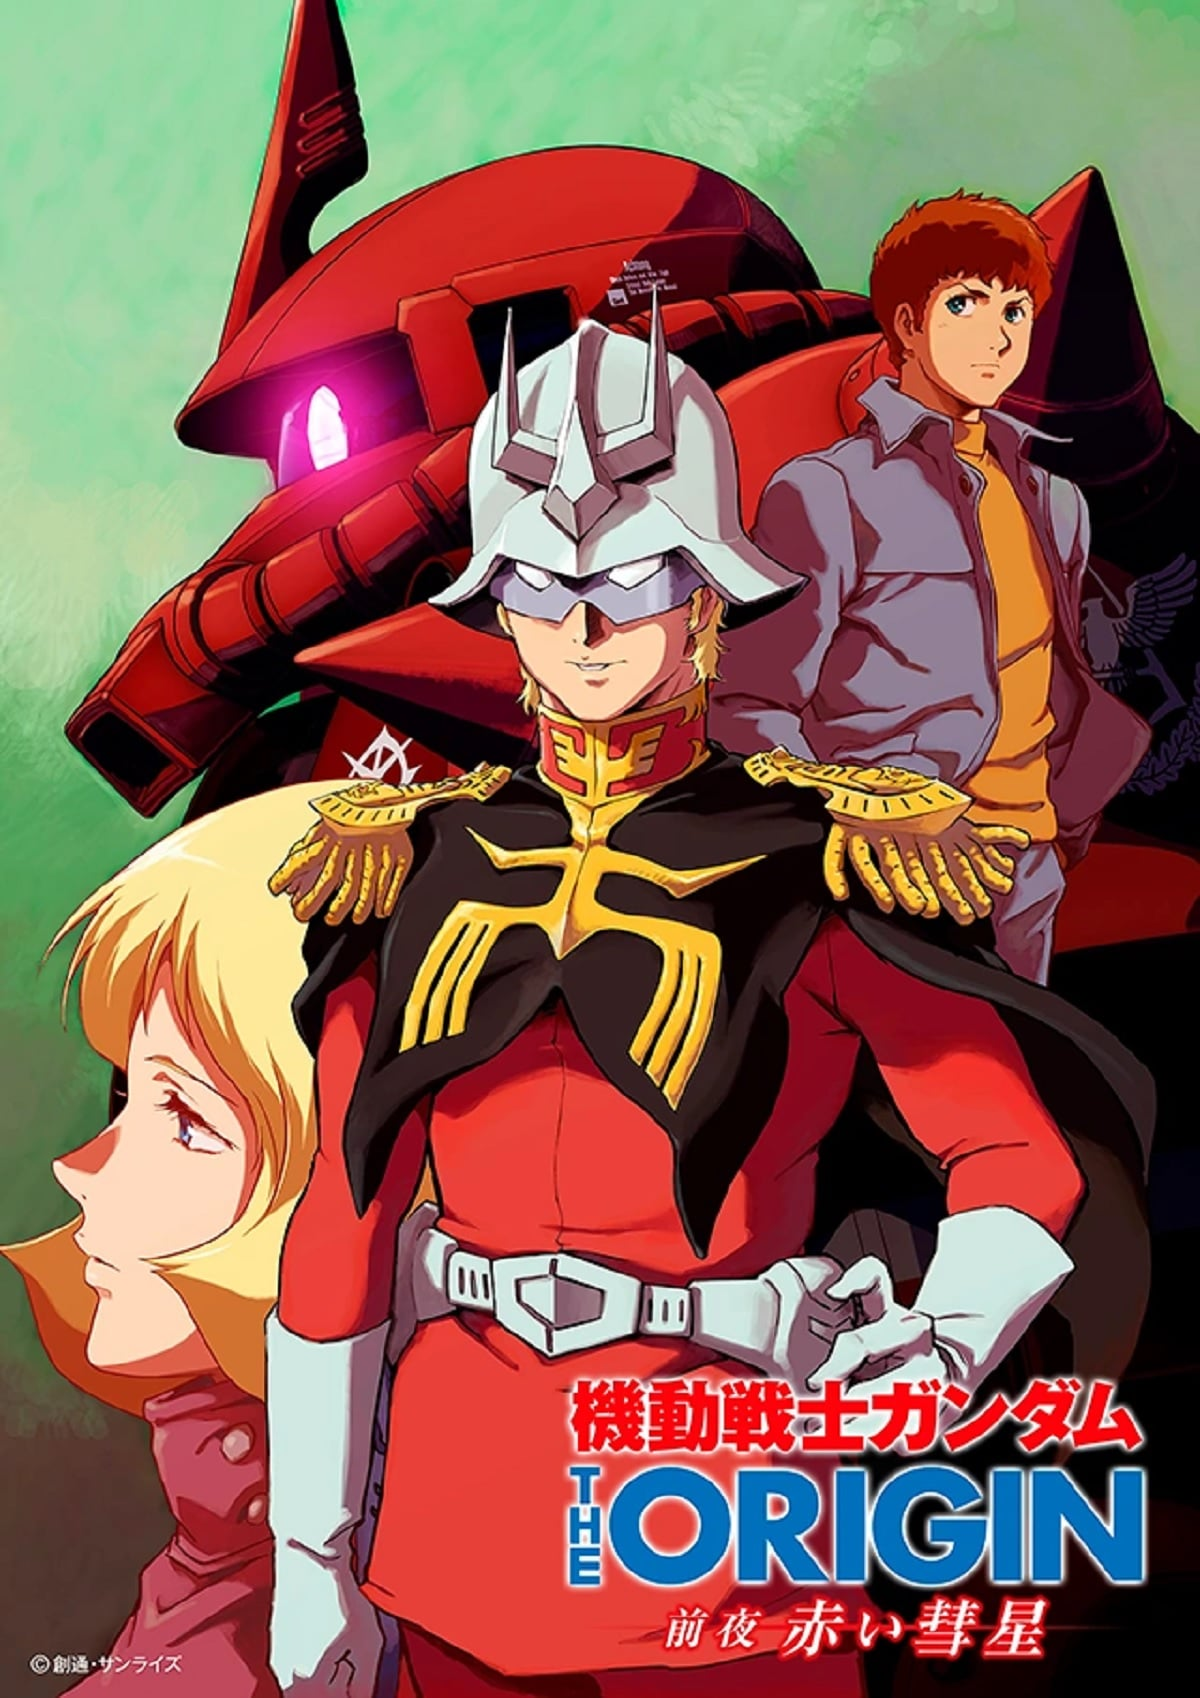 Gundam: The Origin - Advent of the Red Comet. Pic credit: The Gundam Wiki